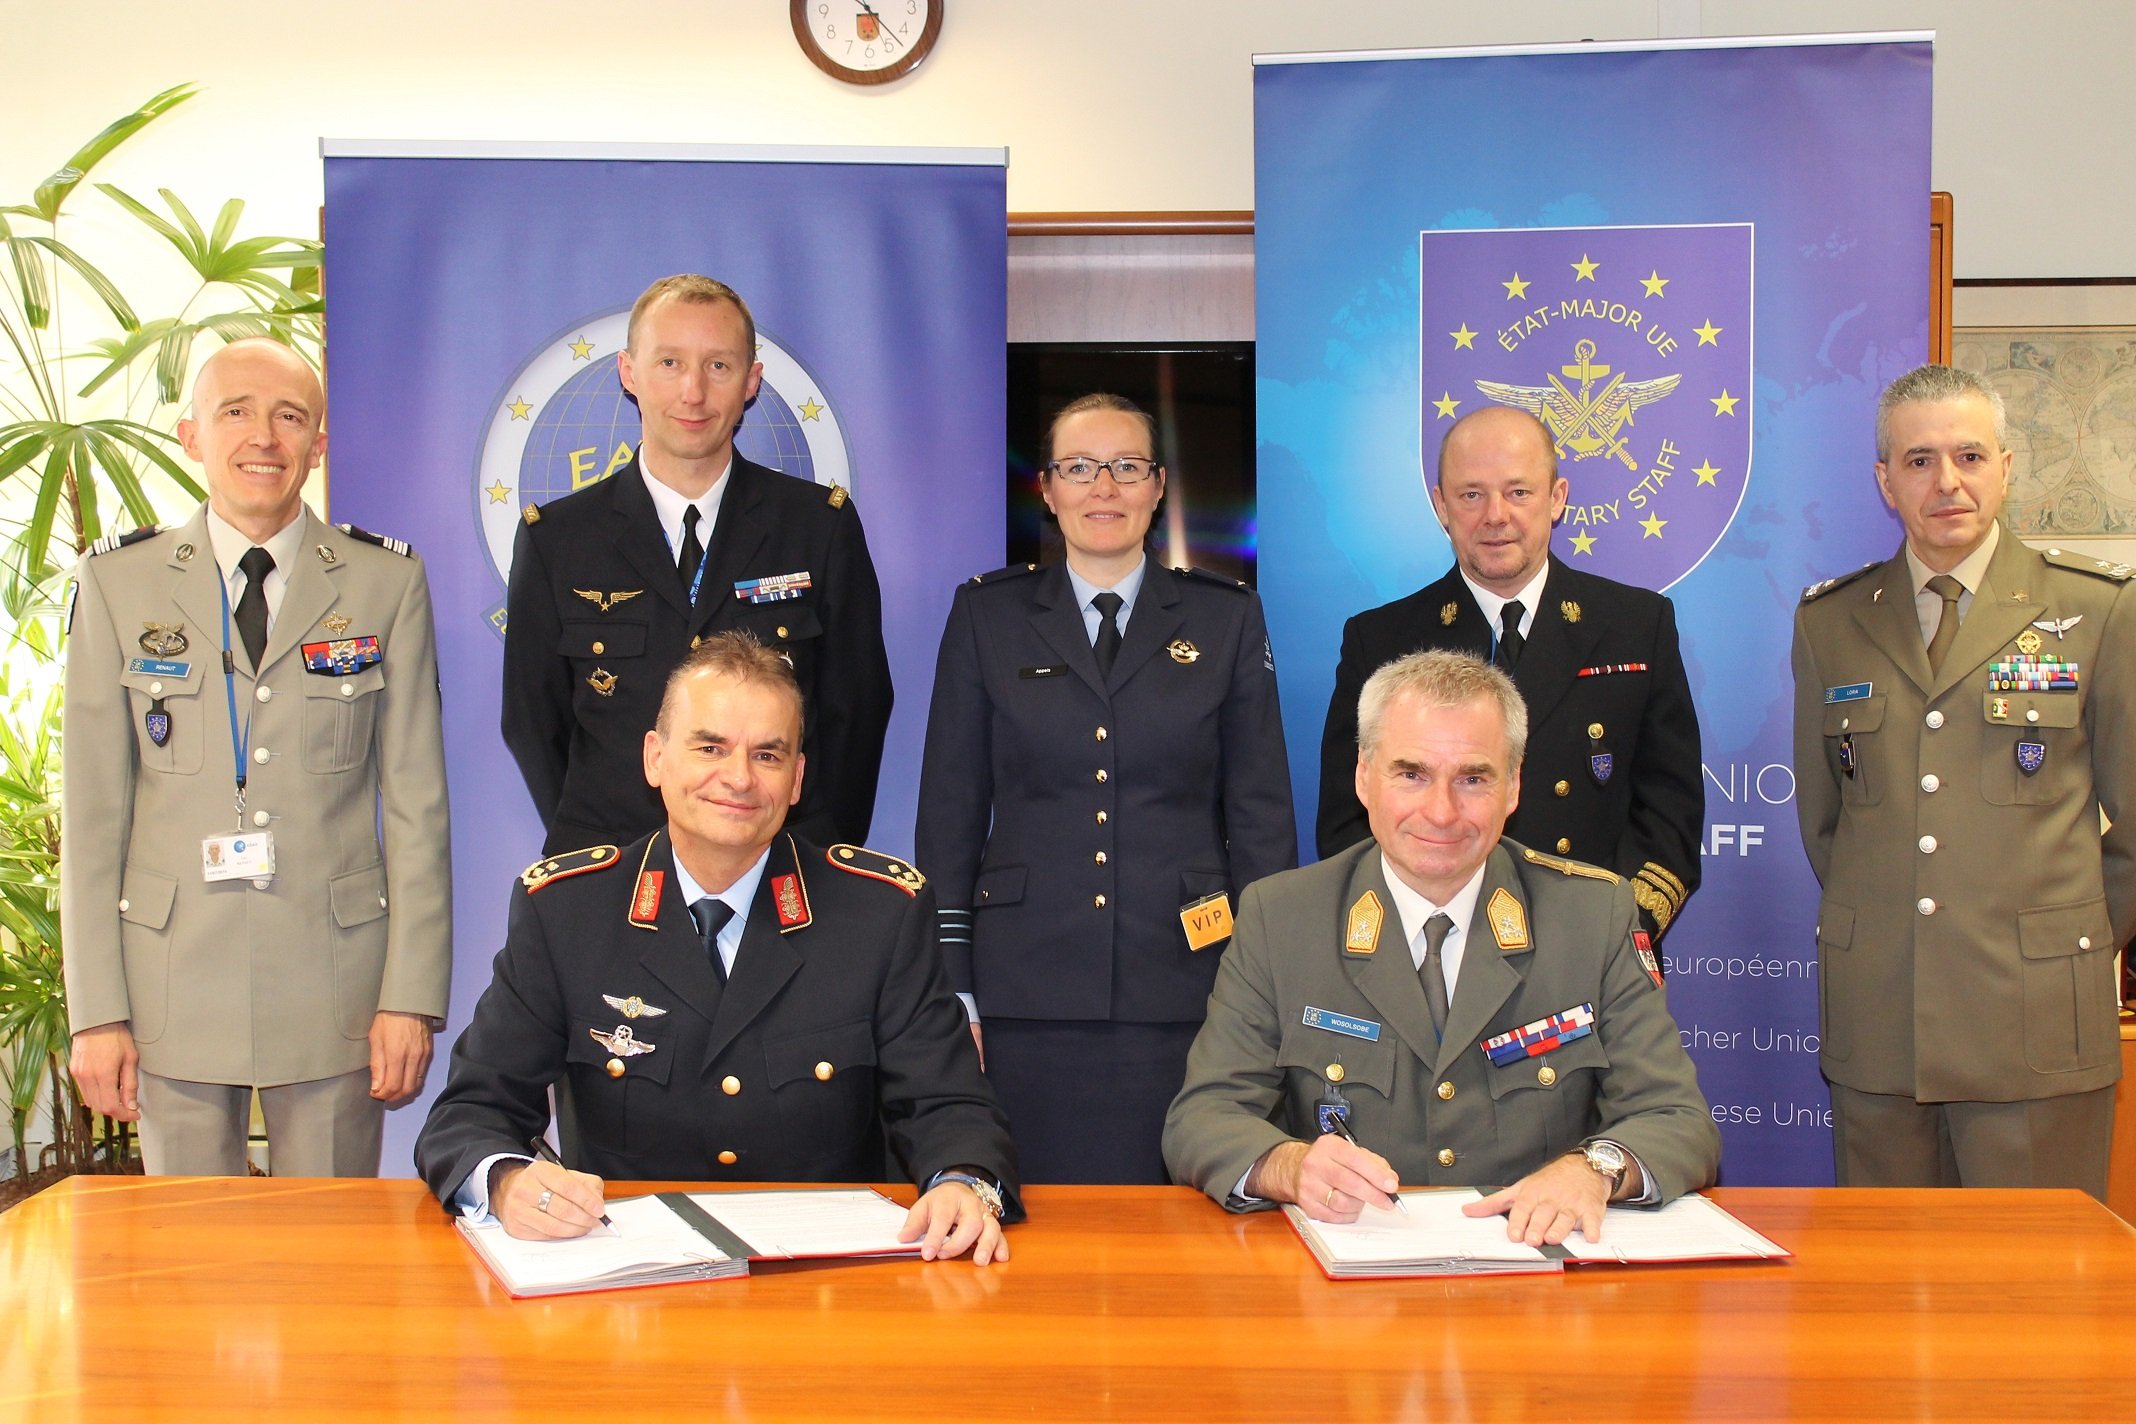 EATC and EUMS are strengthening their cooperation